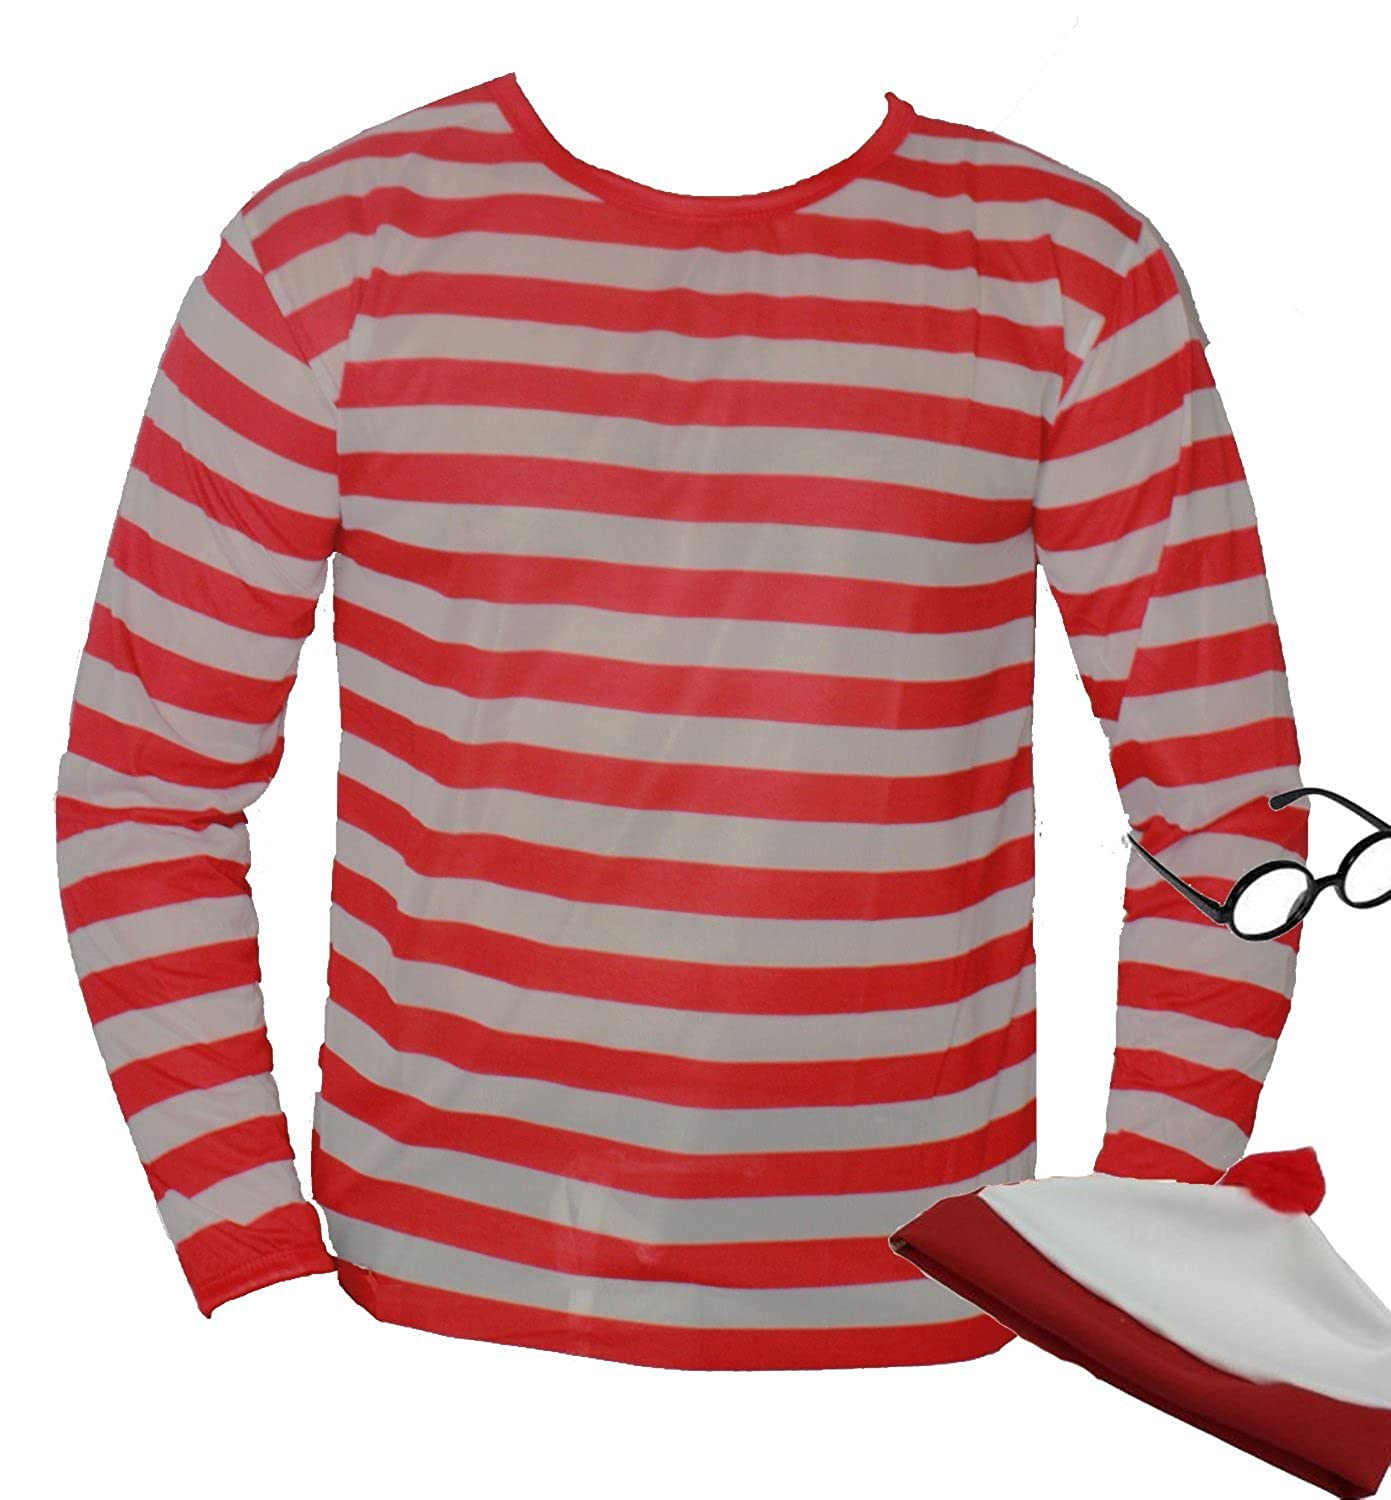 The Dragons Den - Disfraz de Wally para adulto (talla S), color ...